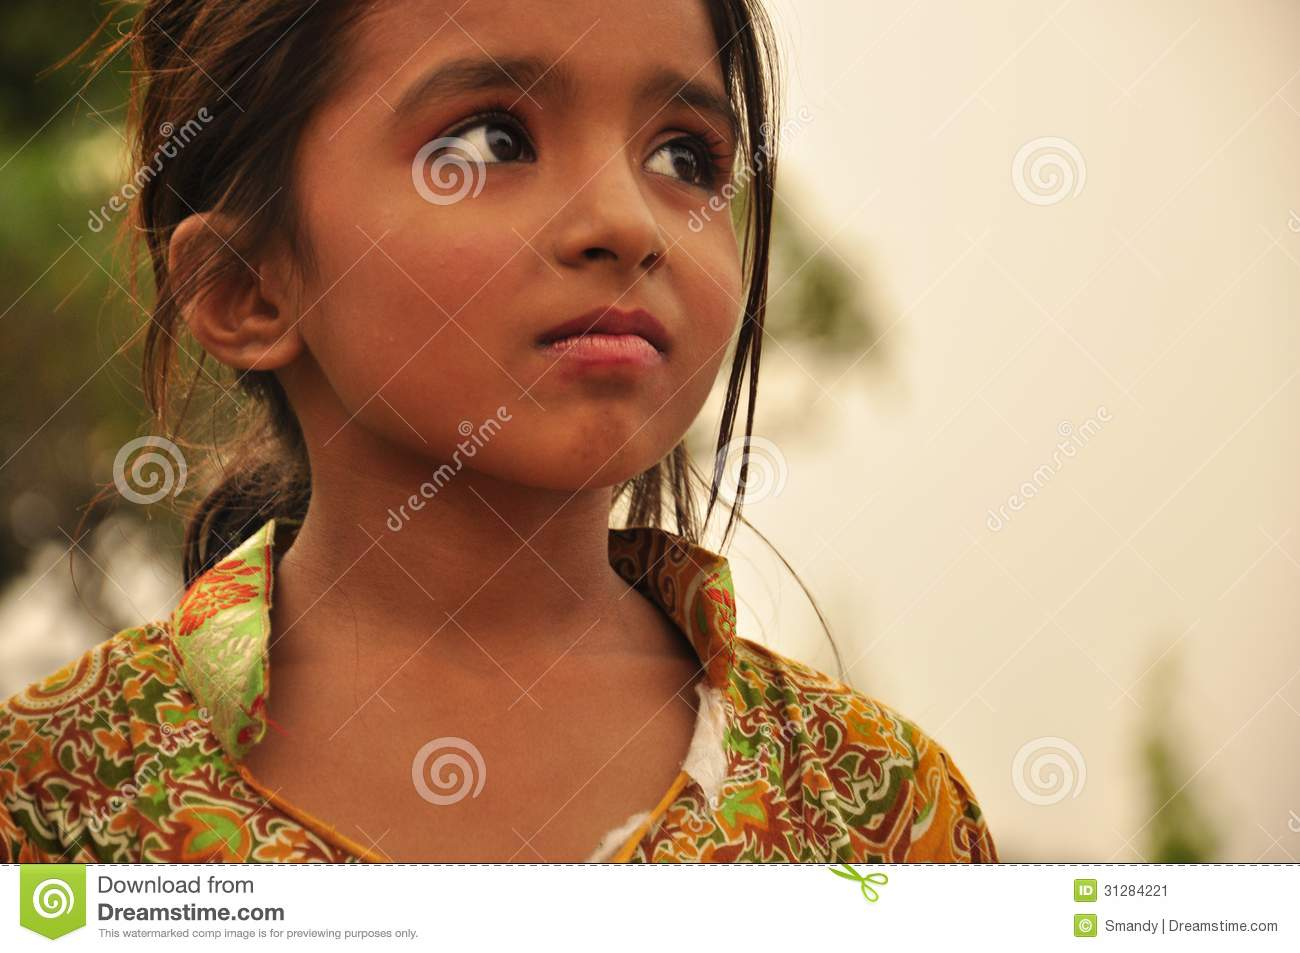 indian village girl stock photos - download 2,827 images